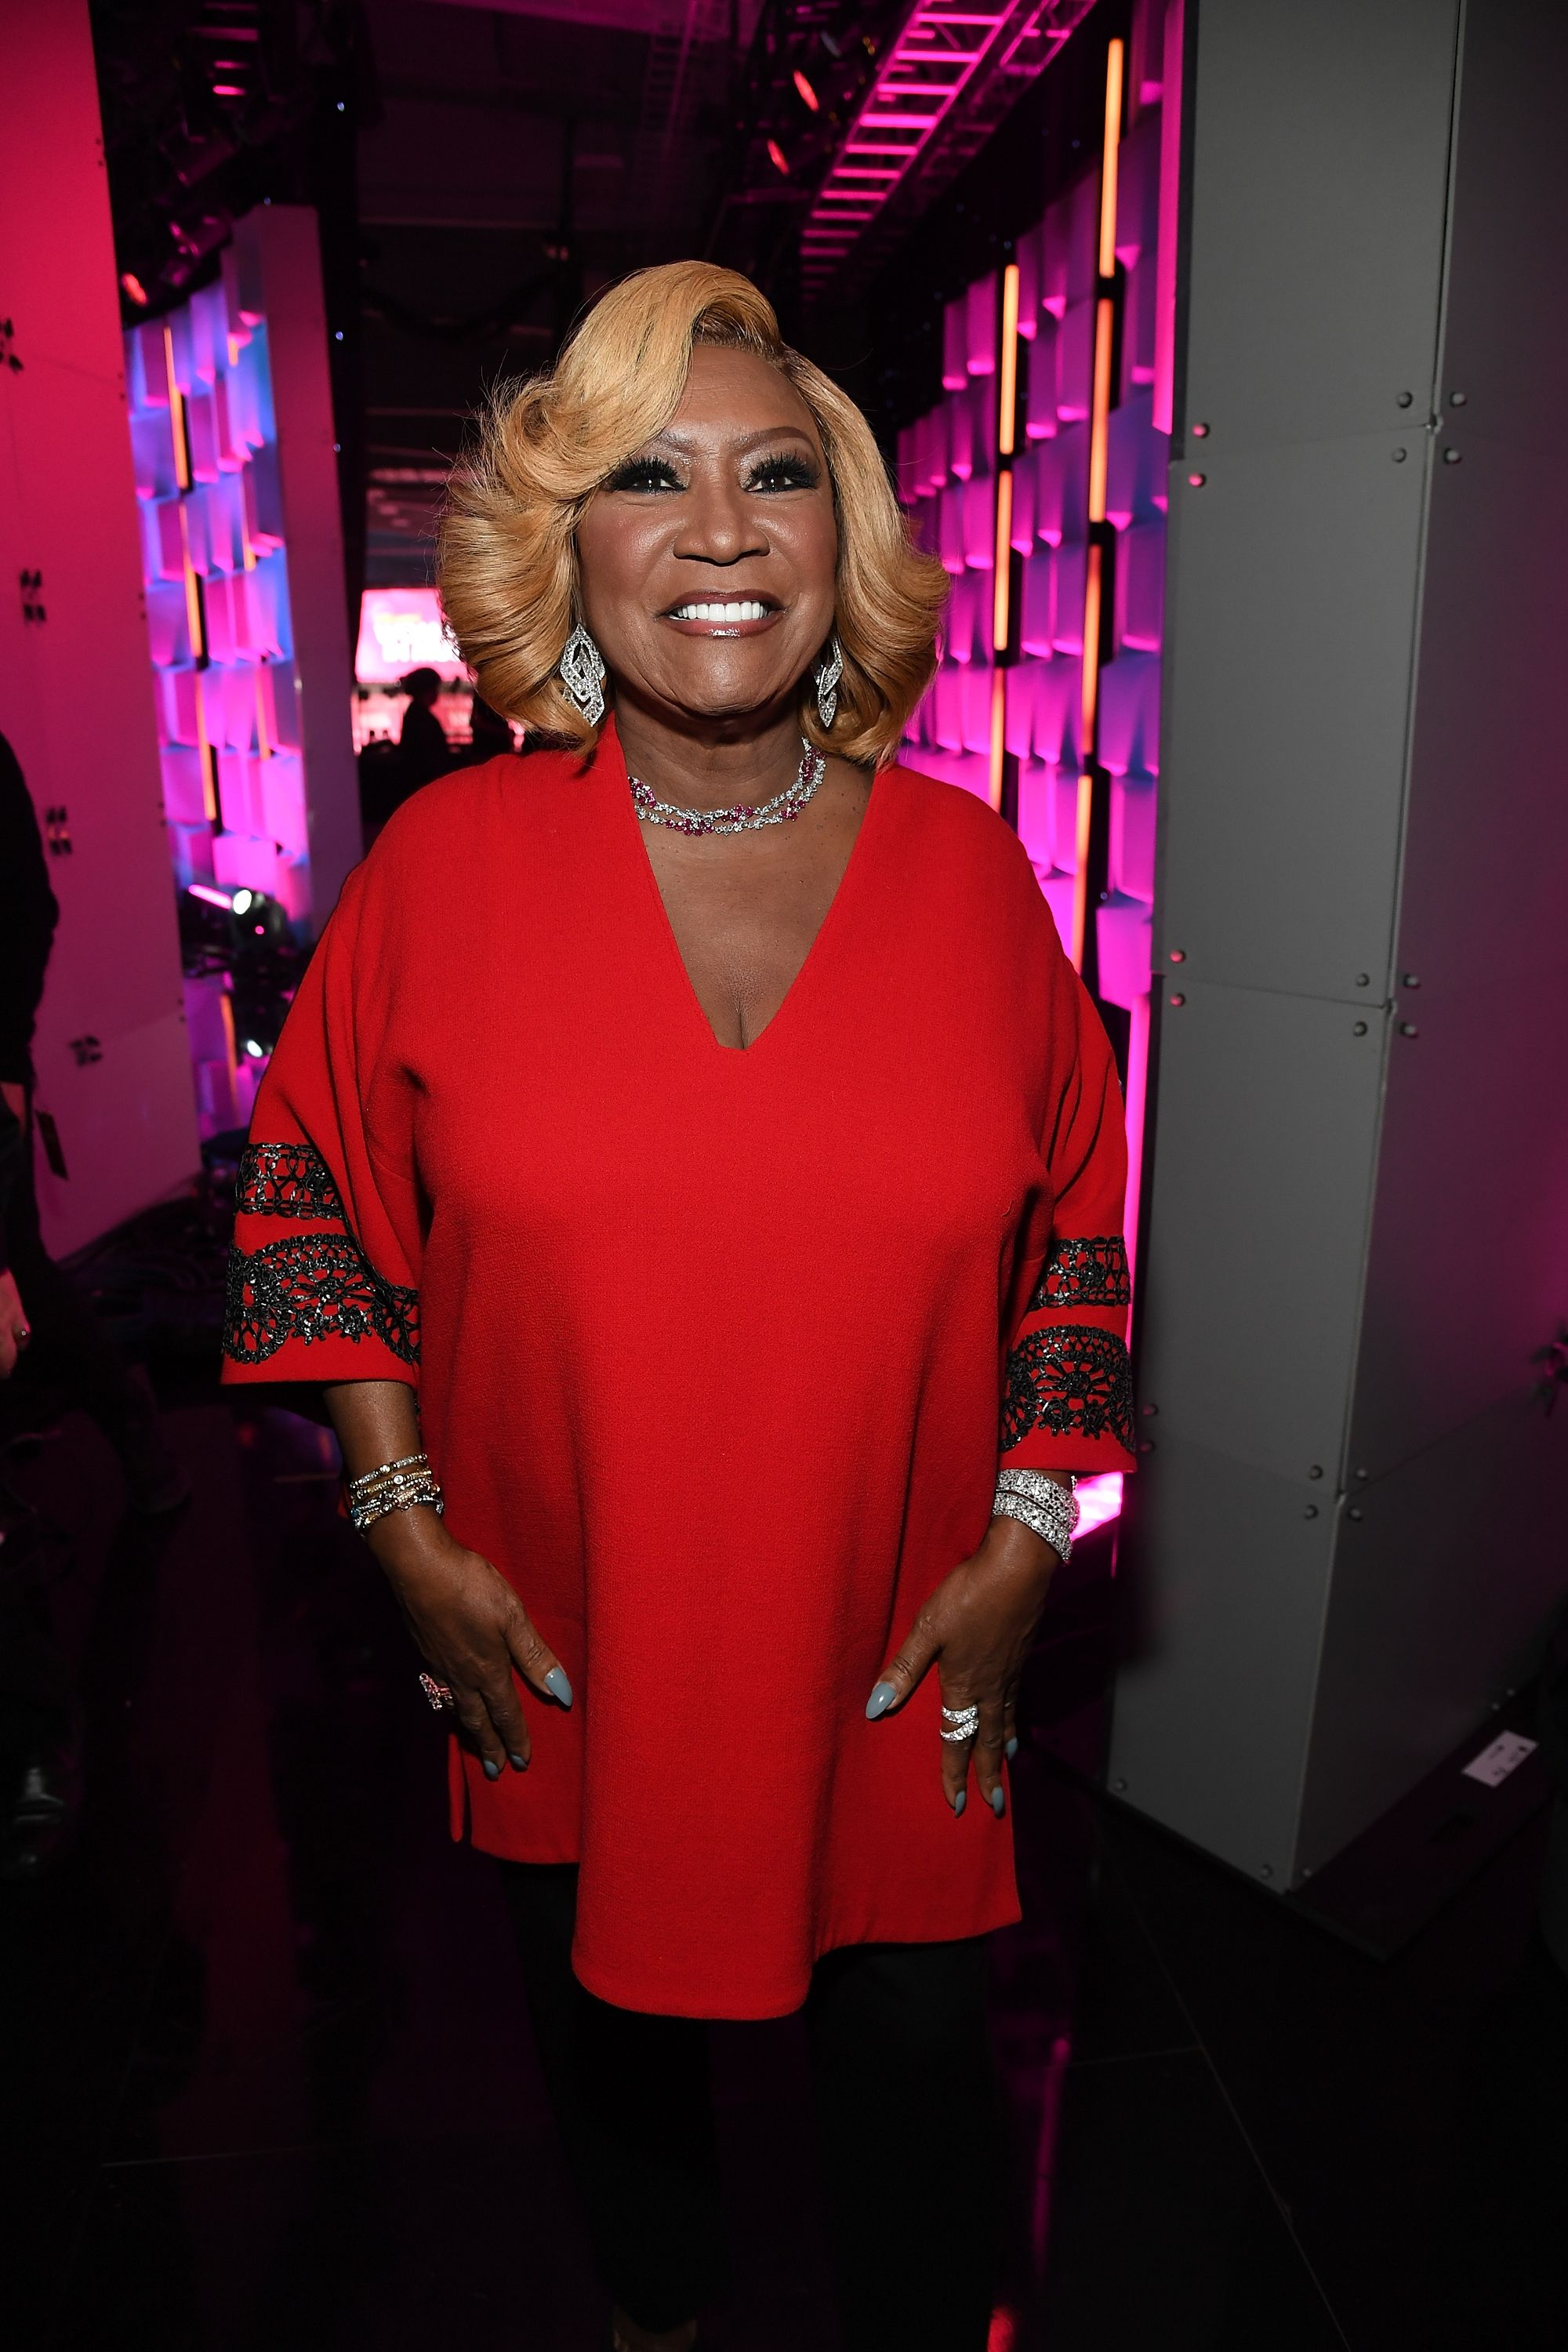 Patti LaBelle during Billboard Women In Music 2018 on December 6, 2018. | Source: Getty Images